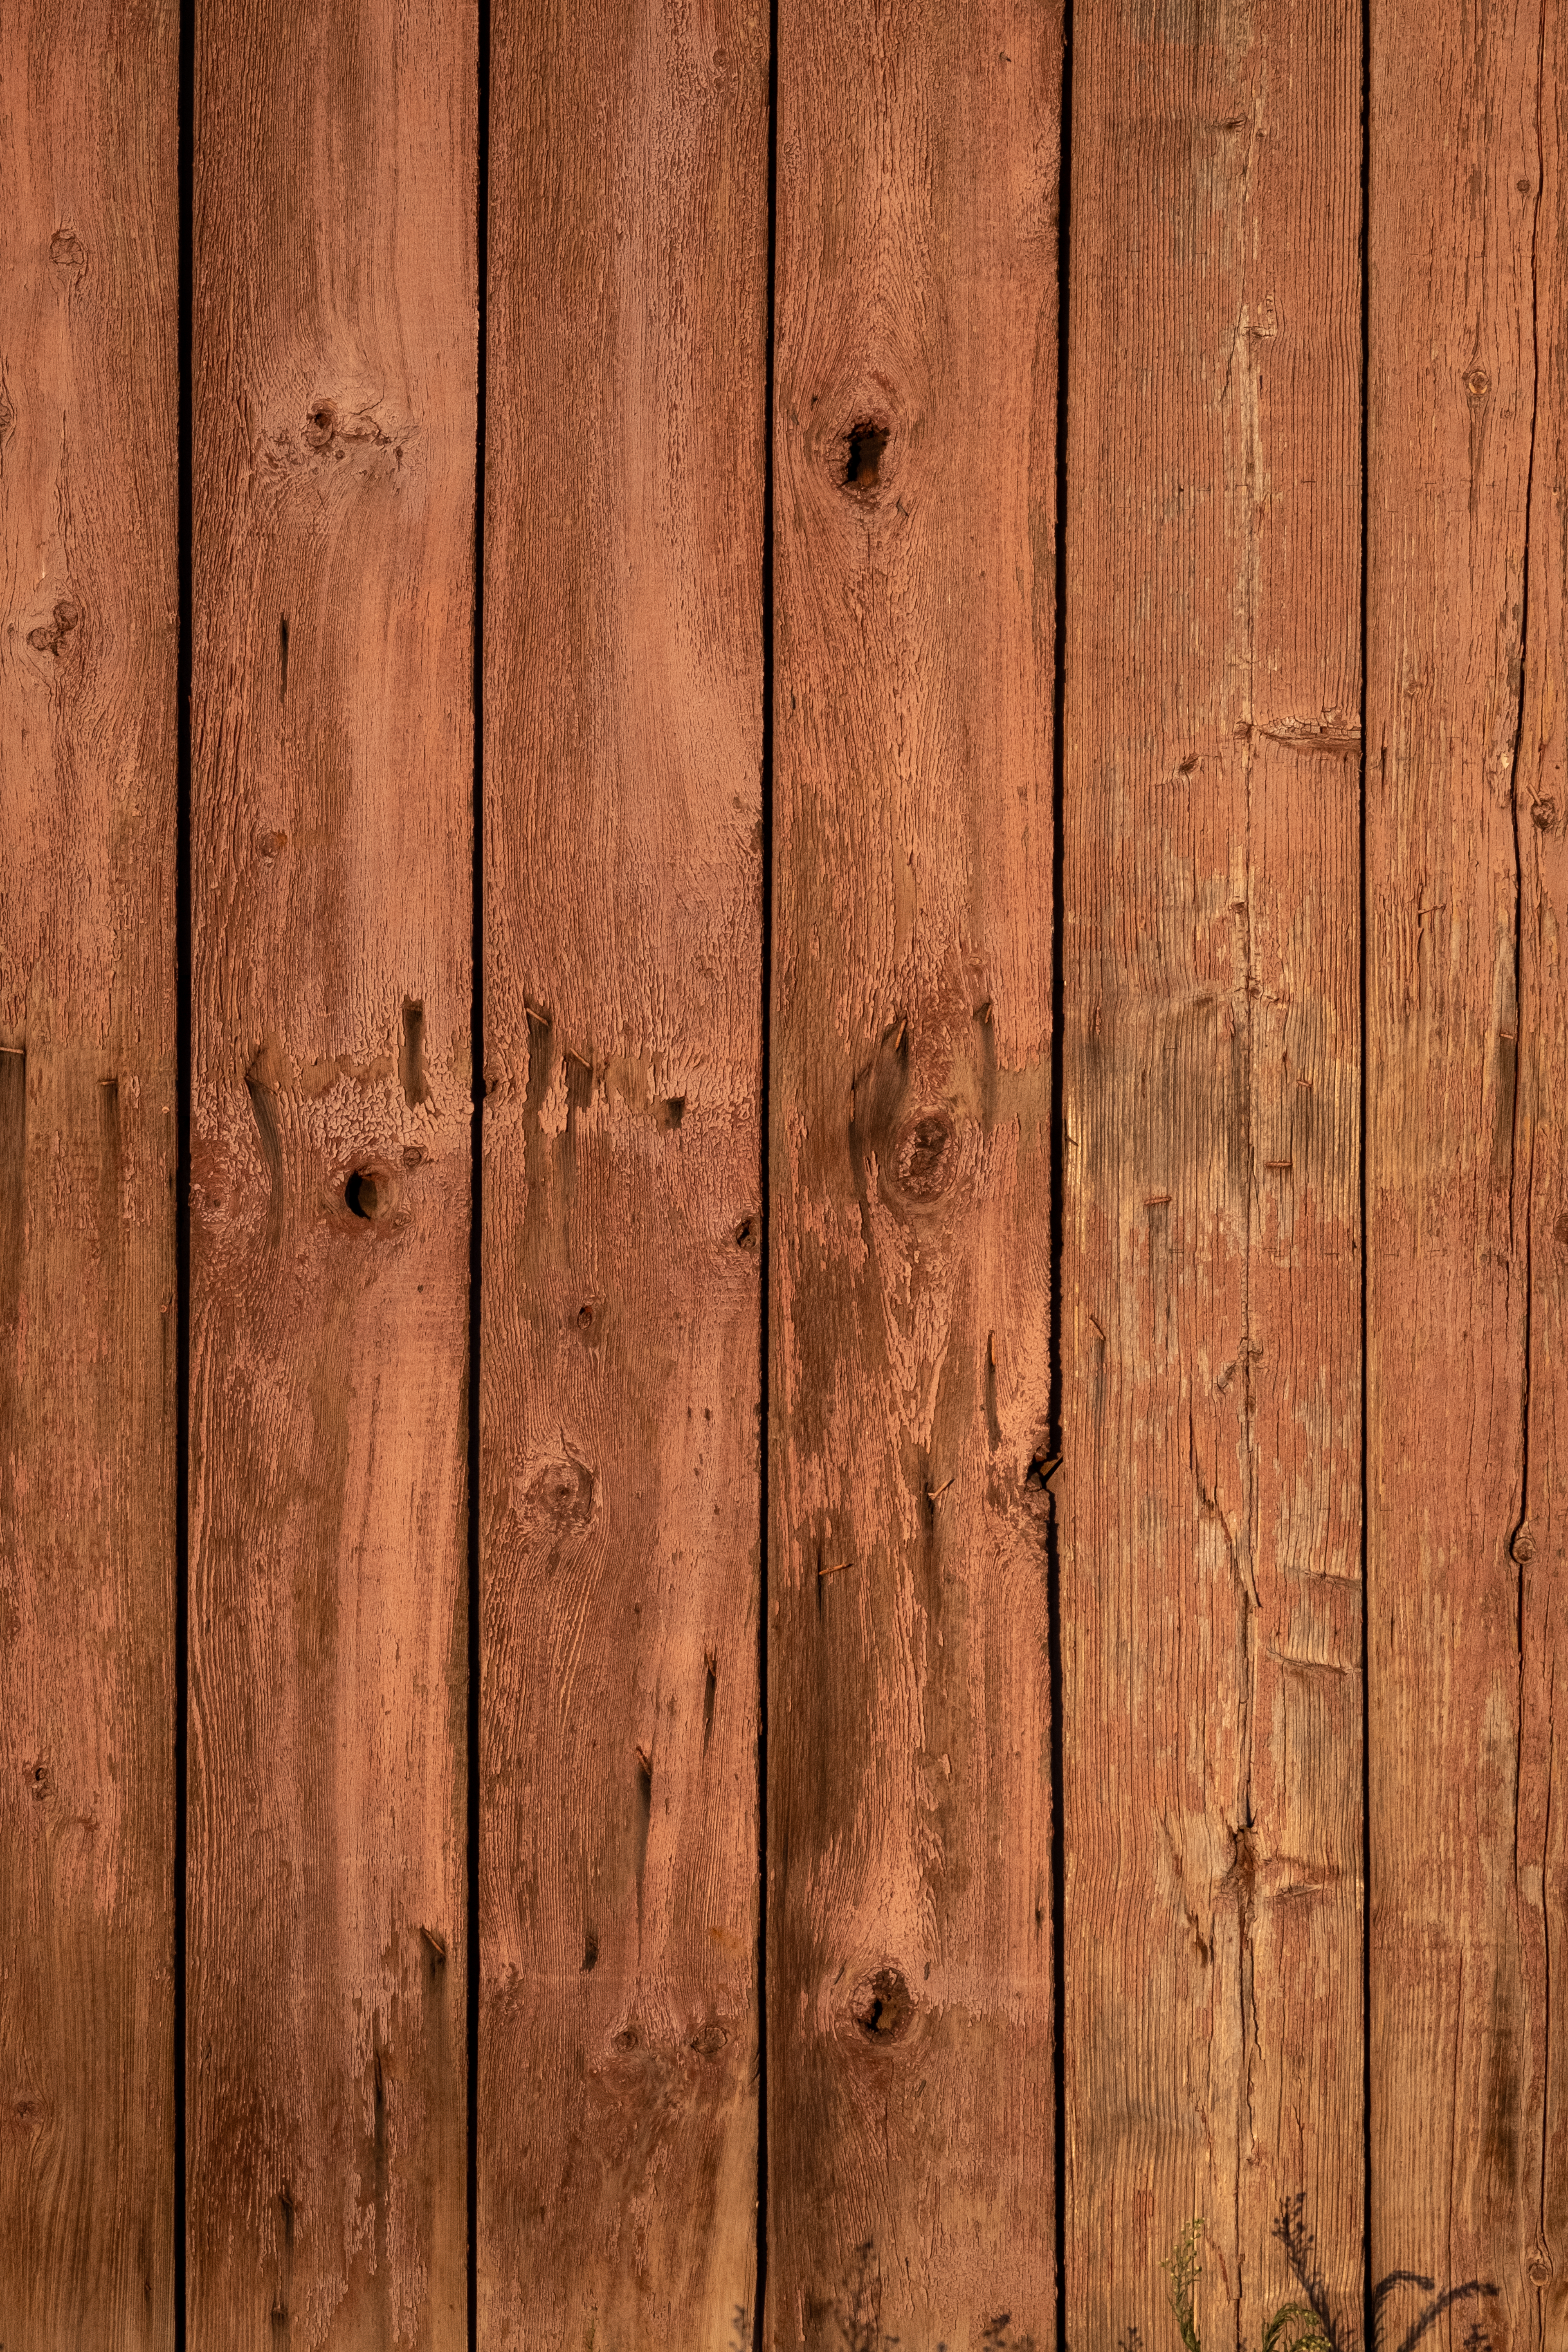 94517 download wallpaper Textures, Texture, Planks, Board, Wood, Wooden, Surface, Paint, Brown screensavers and pictures for free